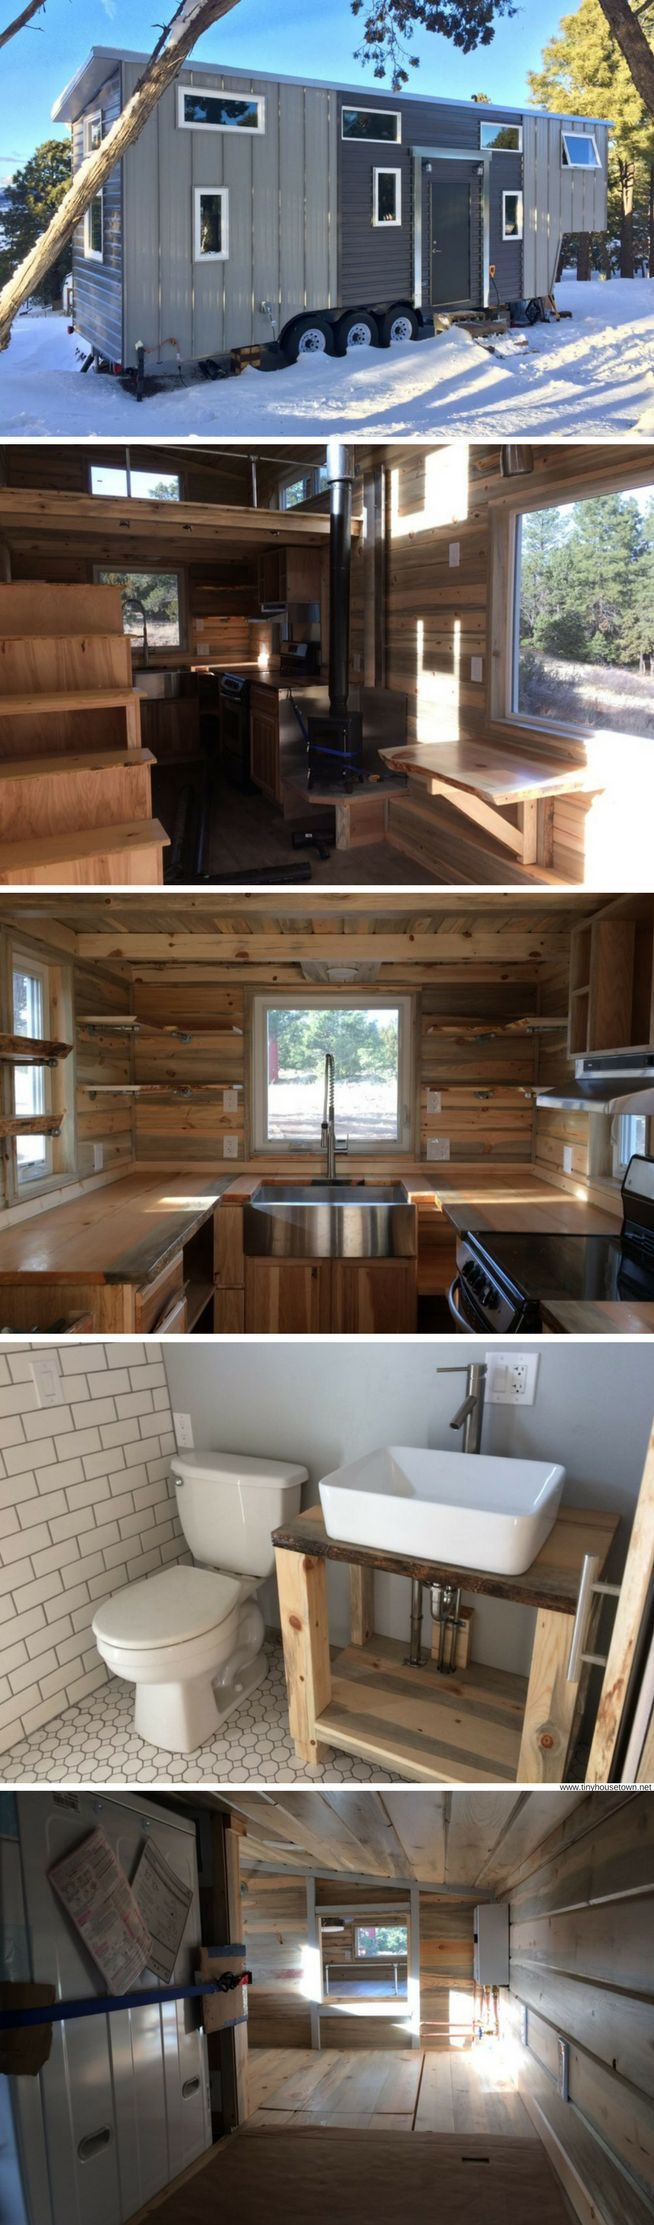 A cozy tiny house, built for clients from Flagstaff, by Rocky Mountain Tiny Houses